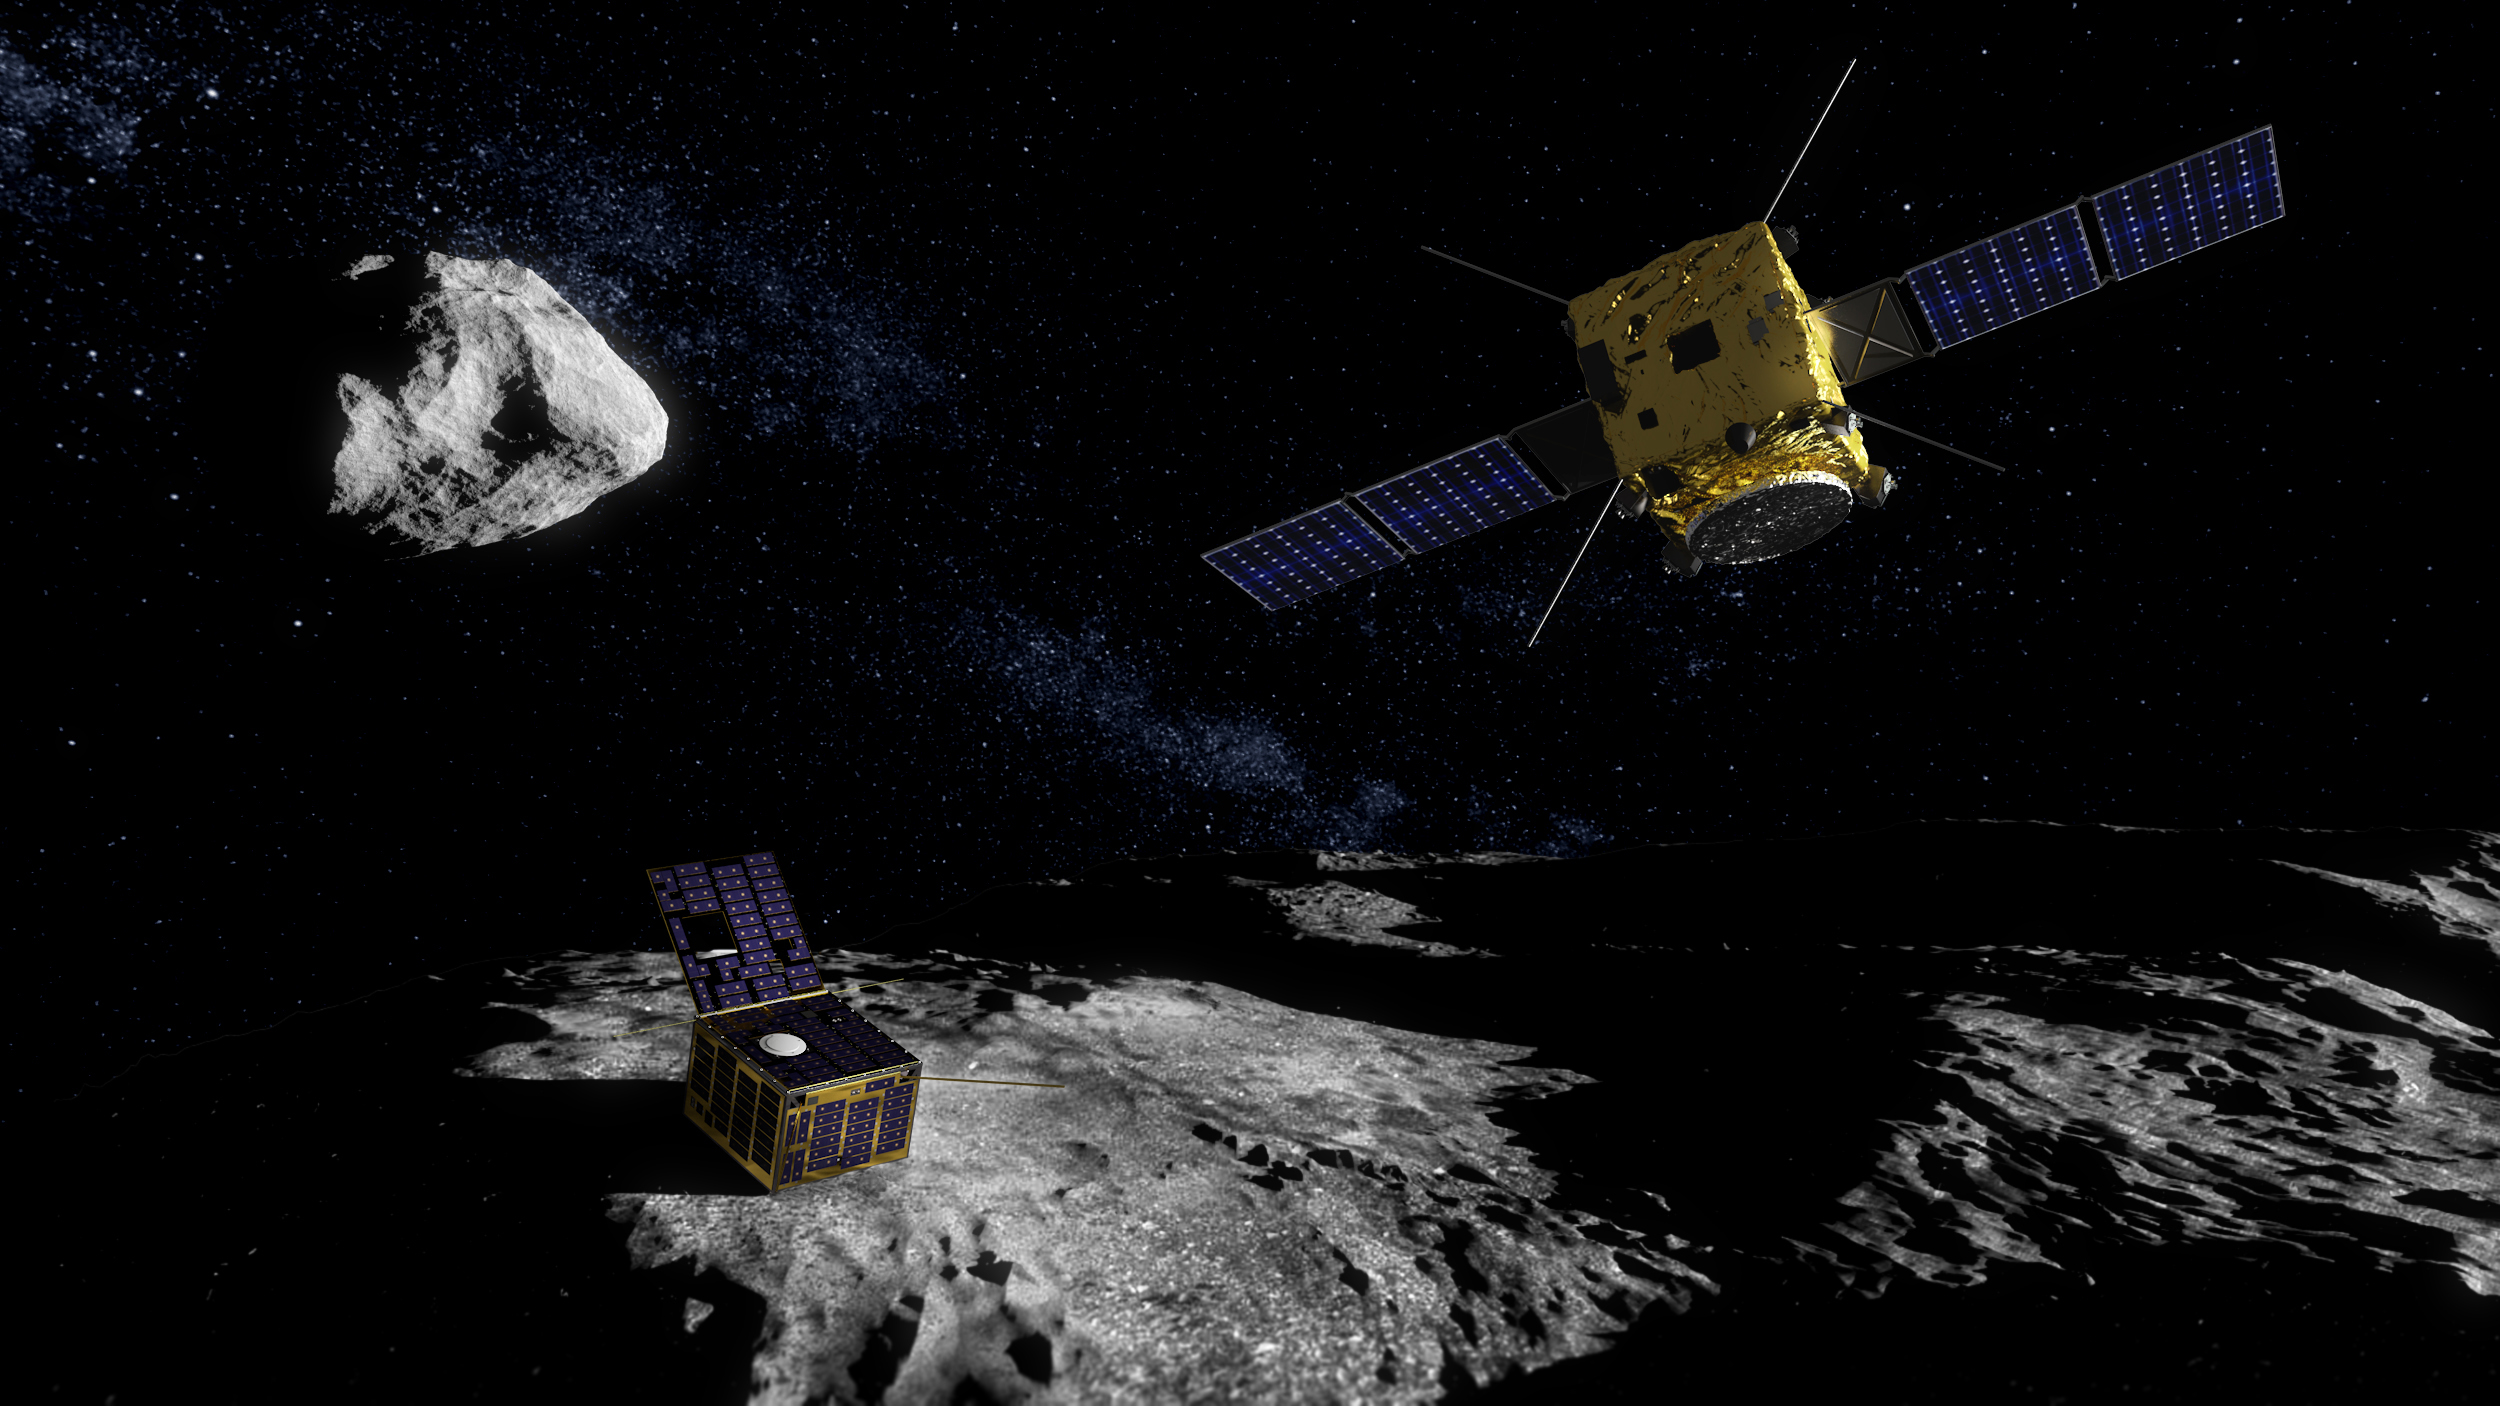 Successful manoeuvre: the lander sets down on an asteroid